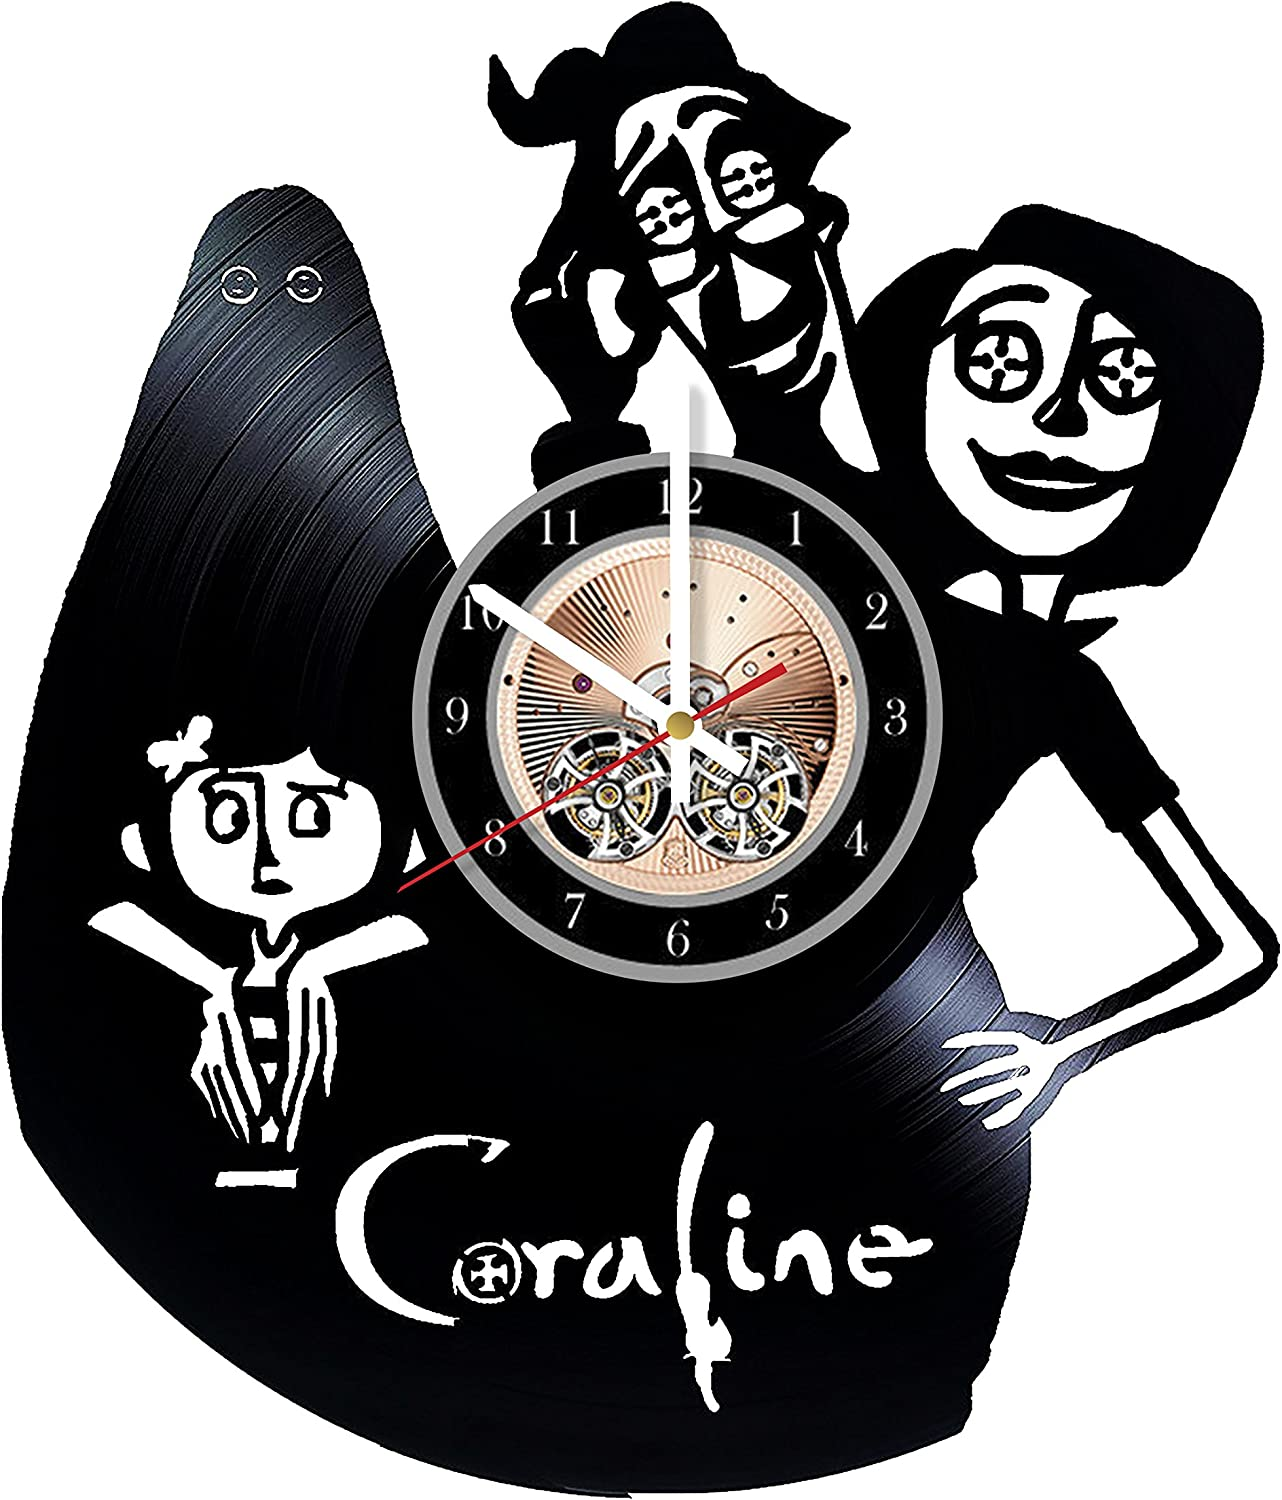 Amazon Com Coraline Dark Fantasy Horror Film Design Art Vinyl Record Wall Clock 12 Really The Most Original Gift For Him And Her Perfect Element Of The Interior And Amazing Home